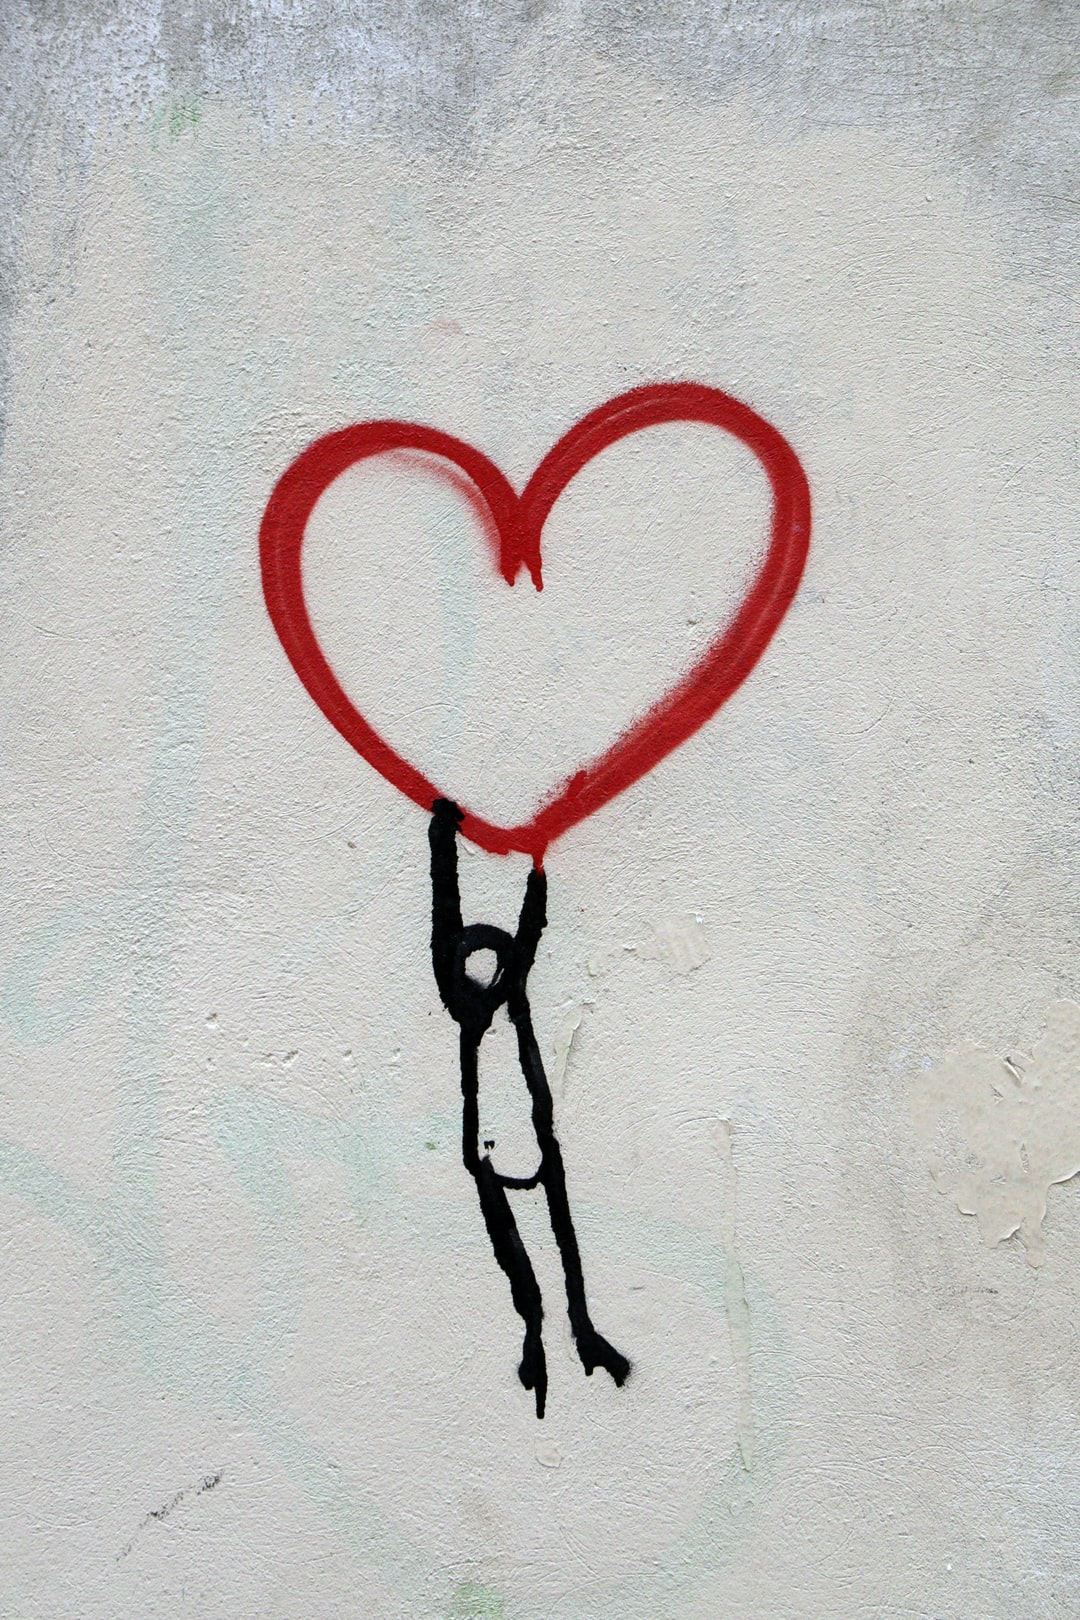 On holiday in Florence (Firenze), Tuscany, Italy, where there was a lot of street art and graffiti, however most of it was extremely good, including this simple one that, to me, tells a powerful and strong story.